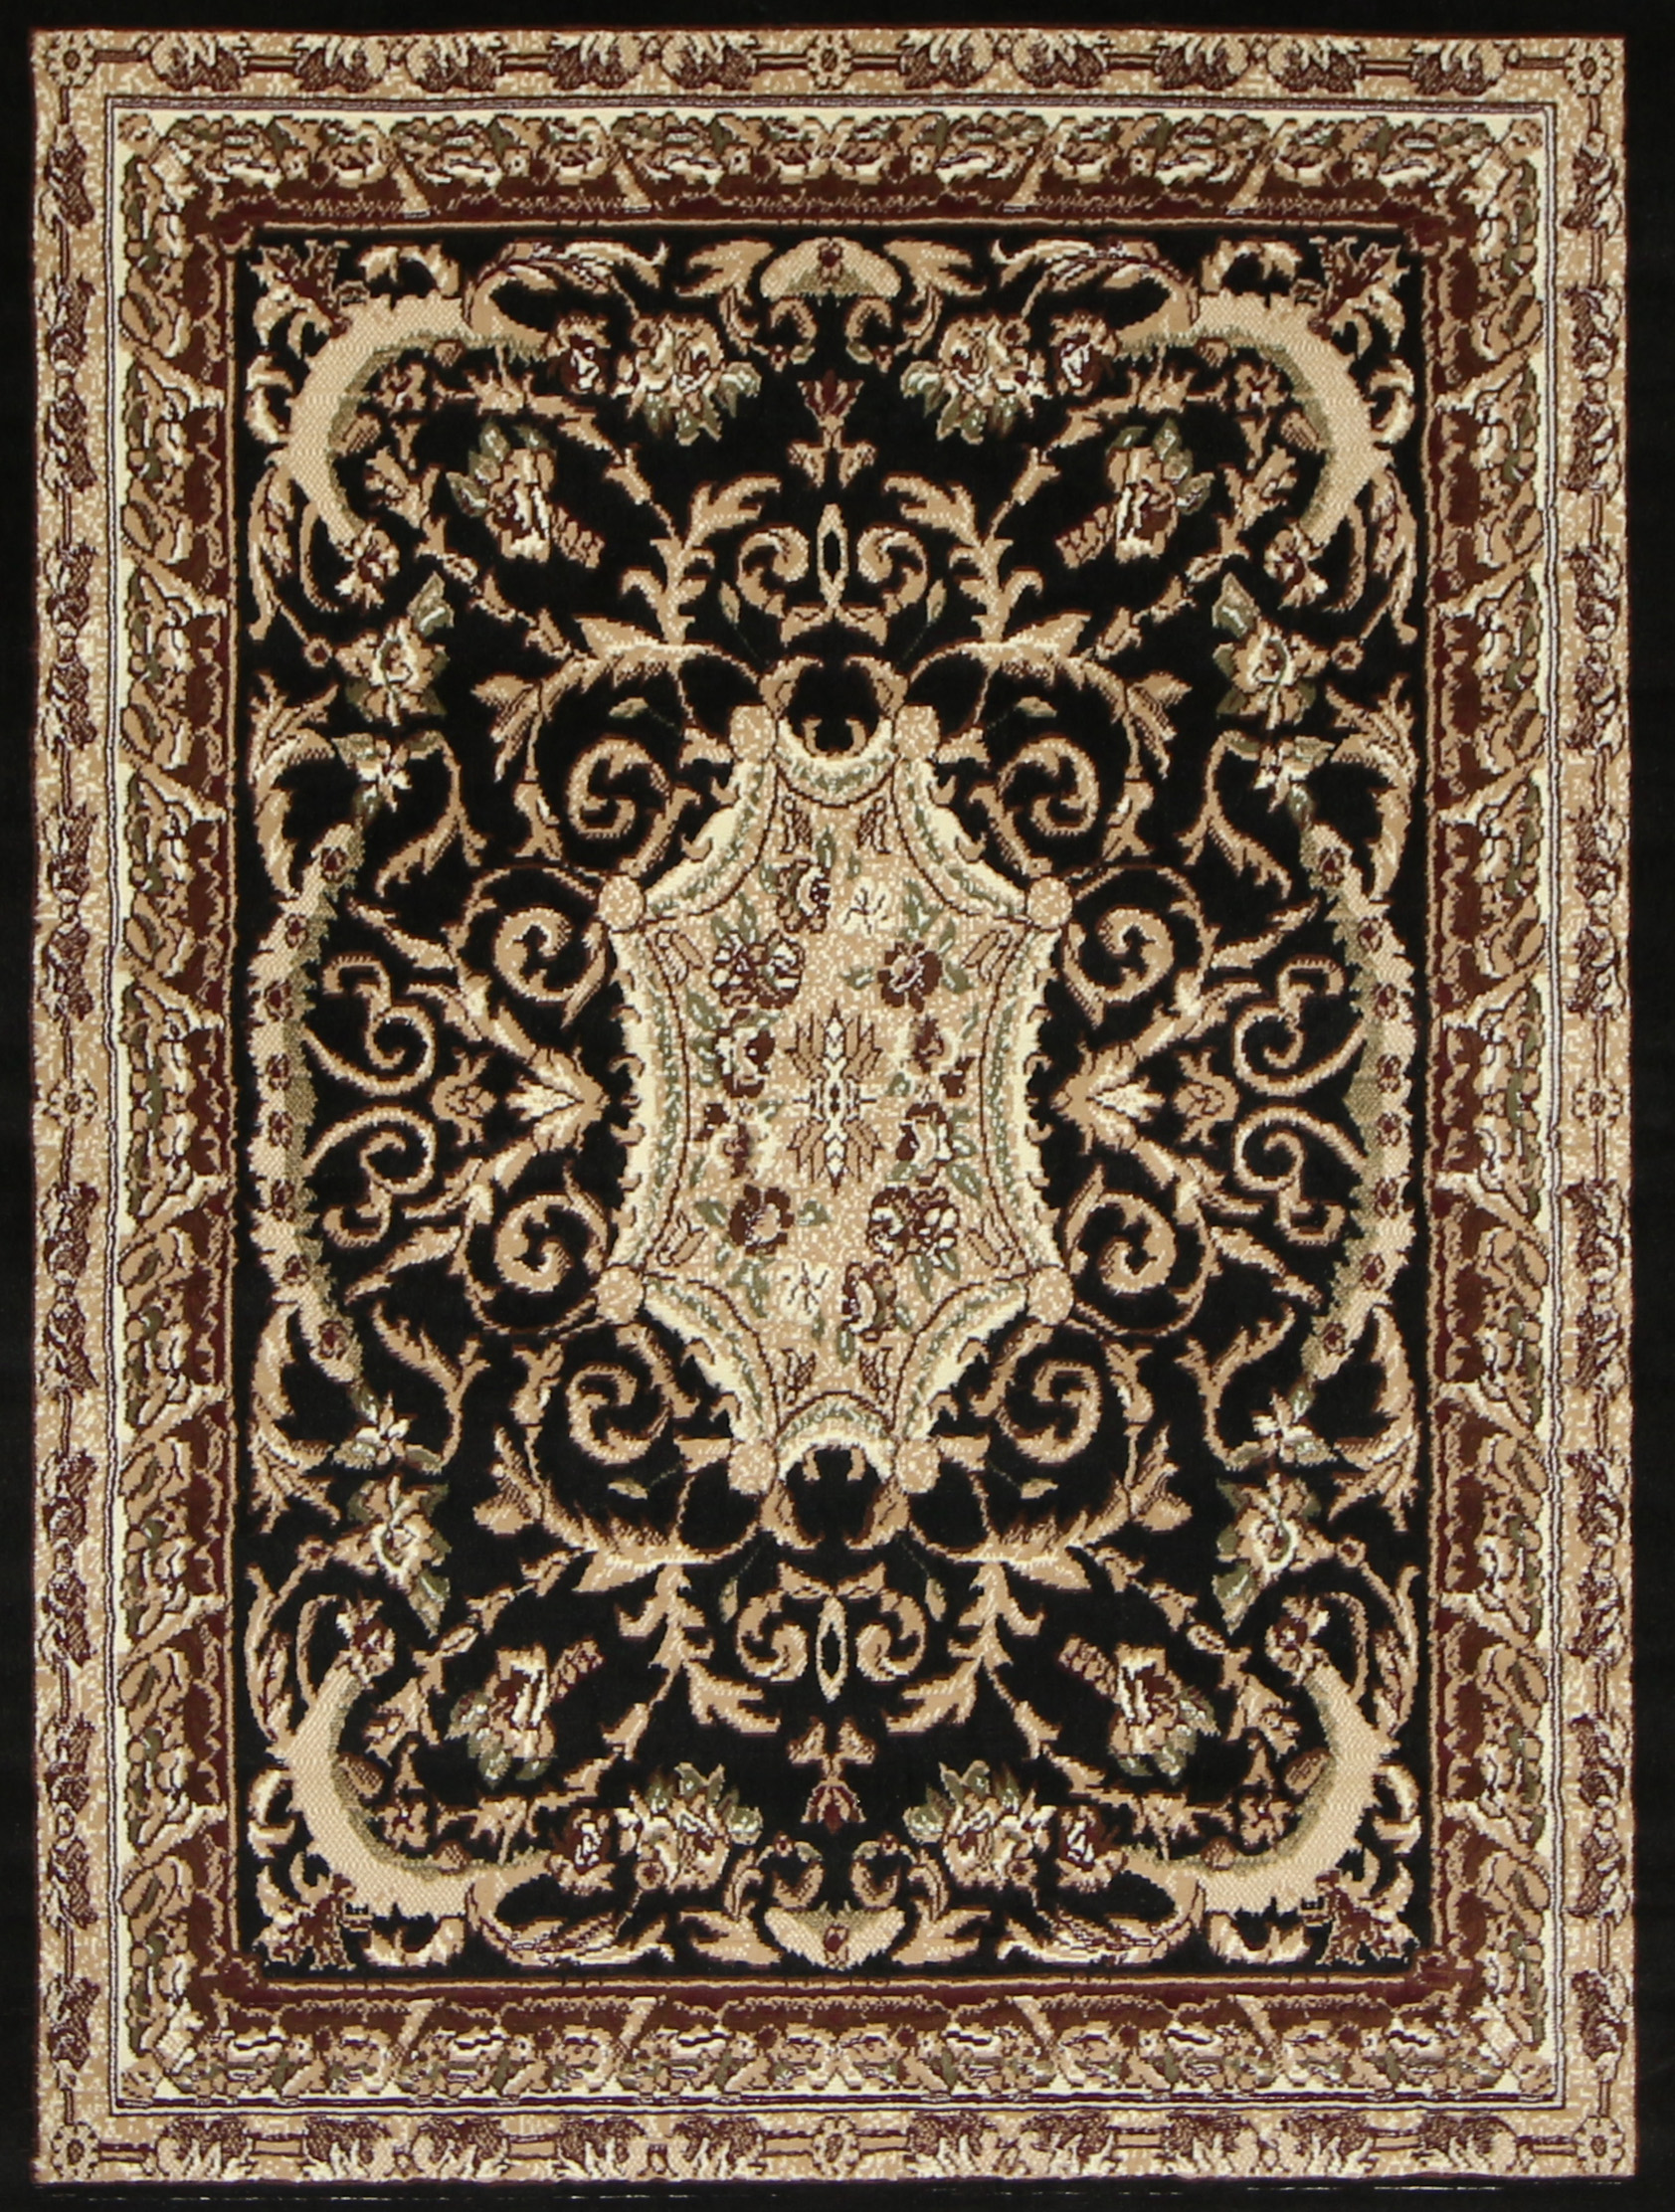 area black rugs classic elegant home square carpet with bined royalty decorations unbeatable large floor photos wool of gold pattern rug floral yellow improvement borders and new most